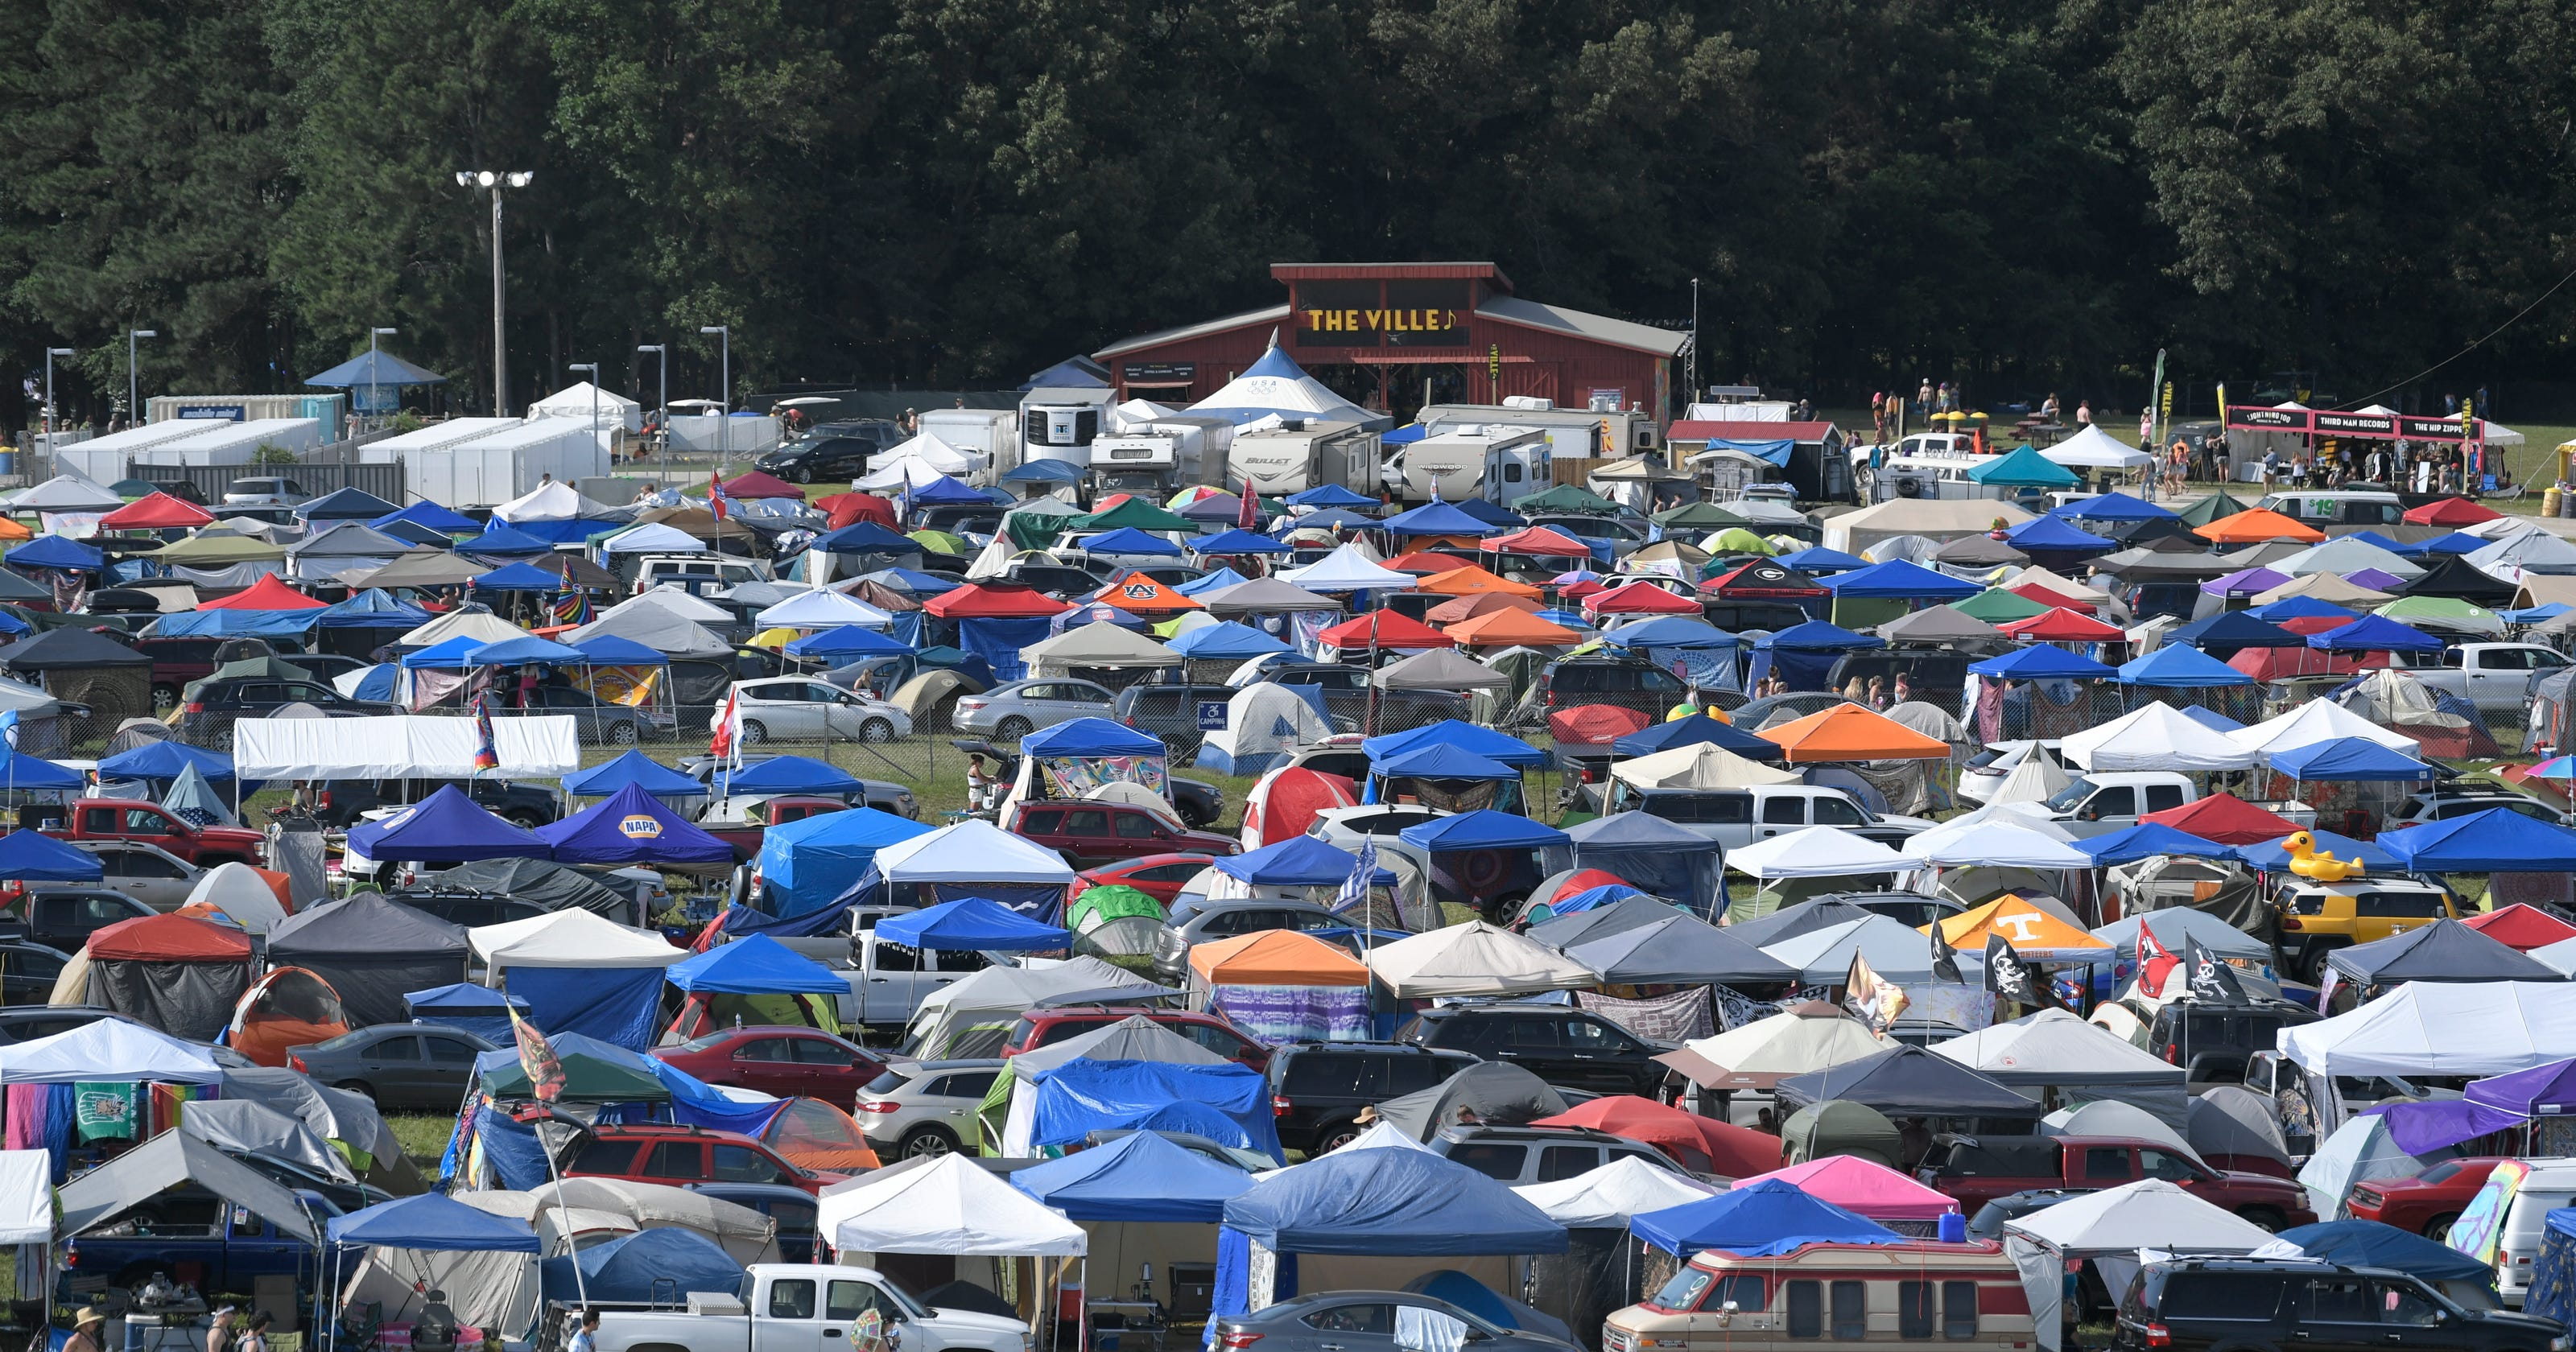 Man found dead at Bonnaroo: Here's what we know